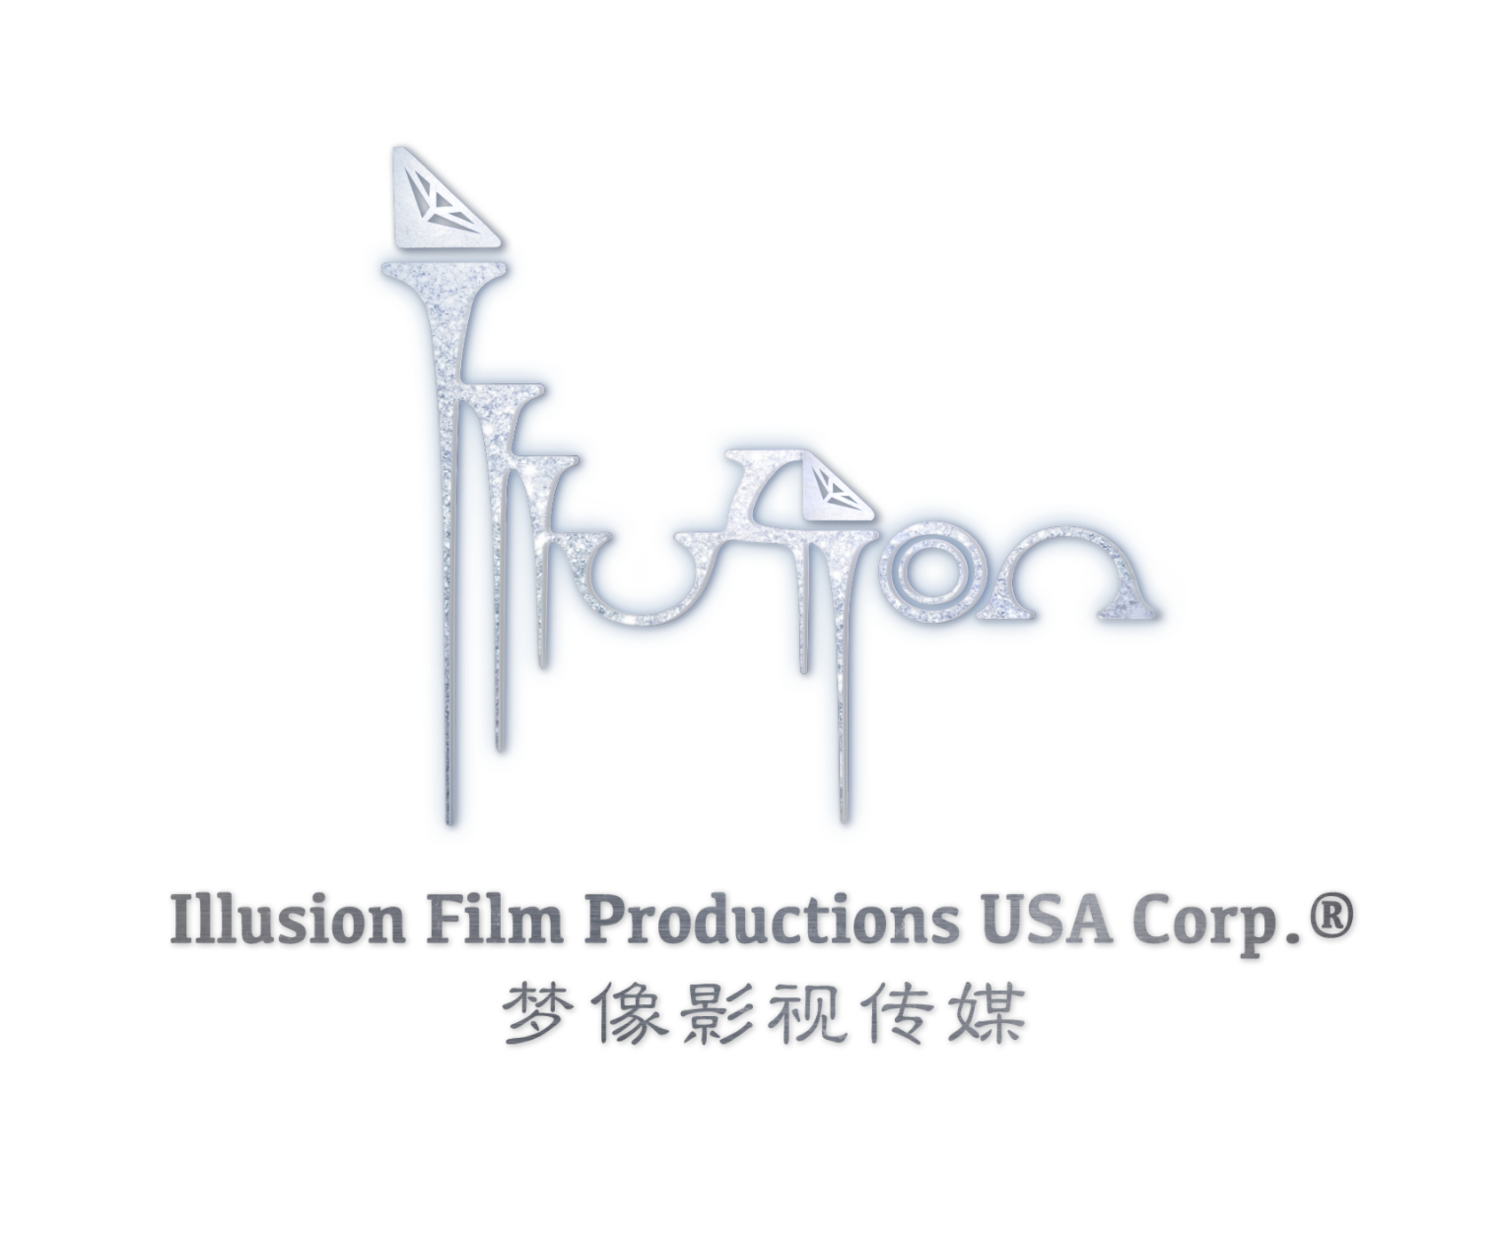 illusion film productions USA